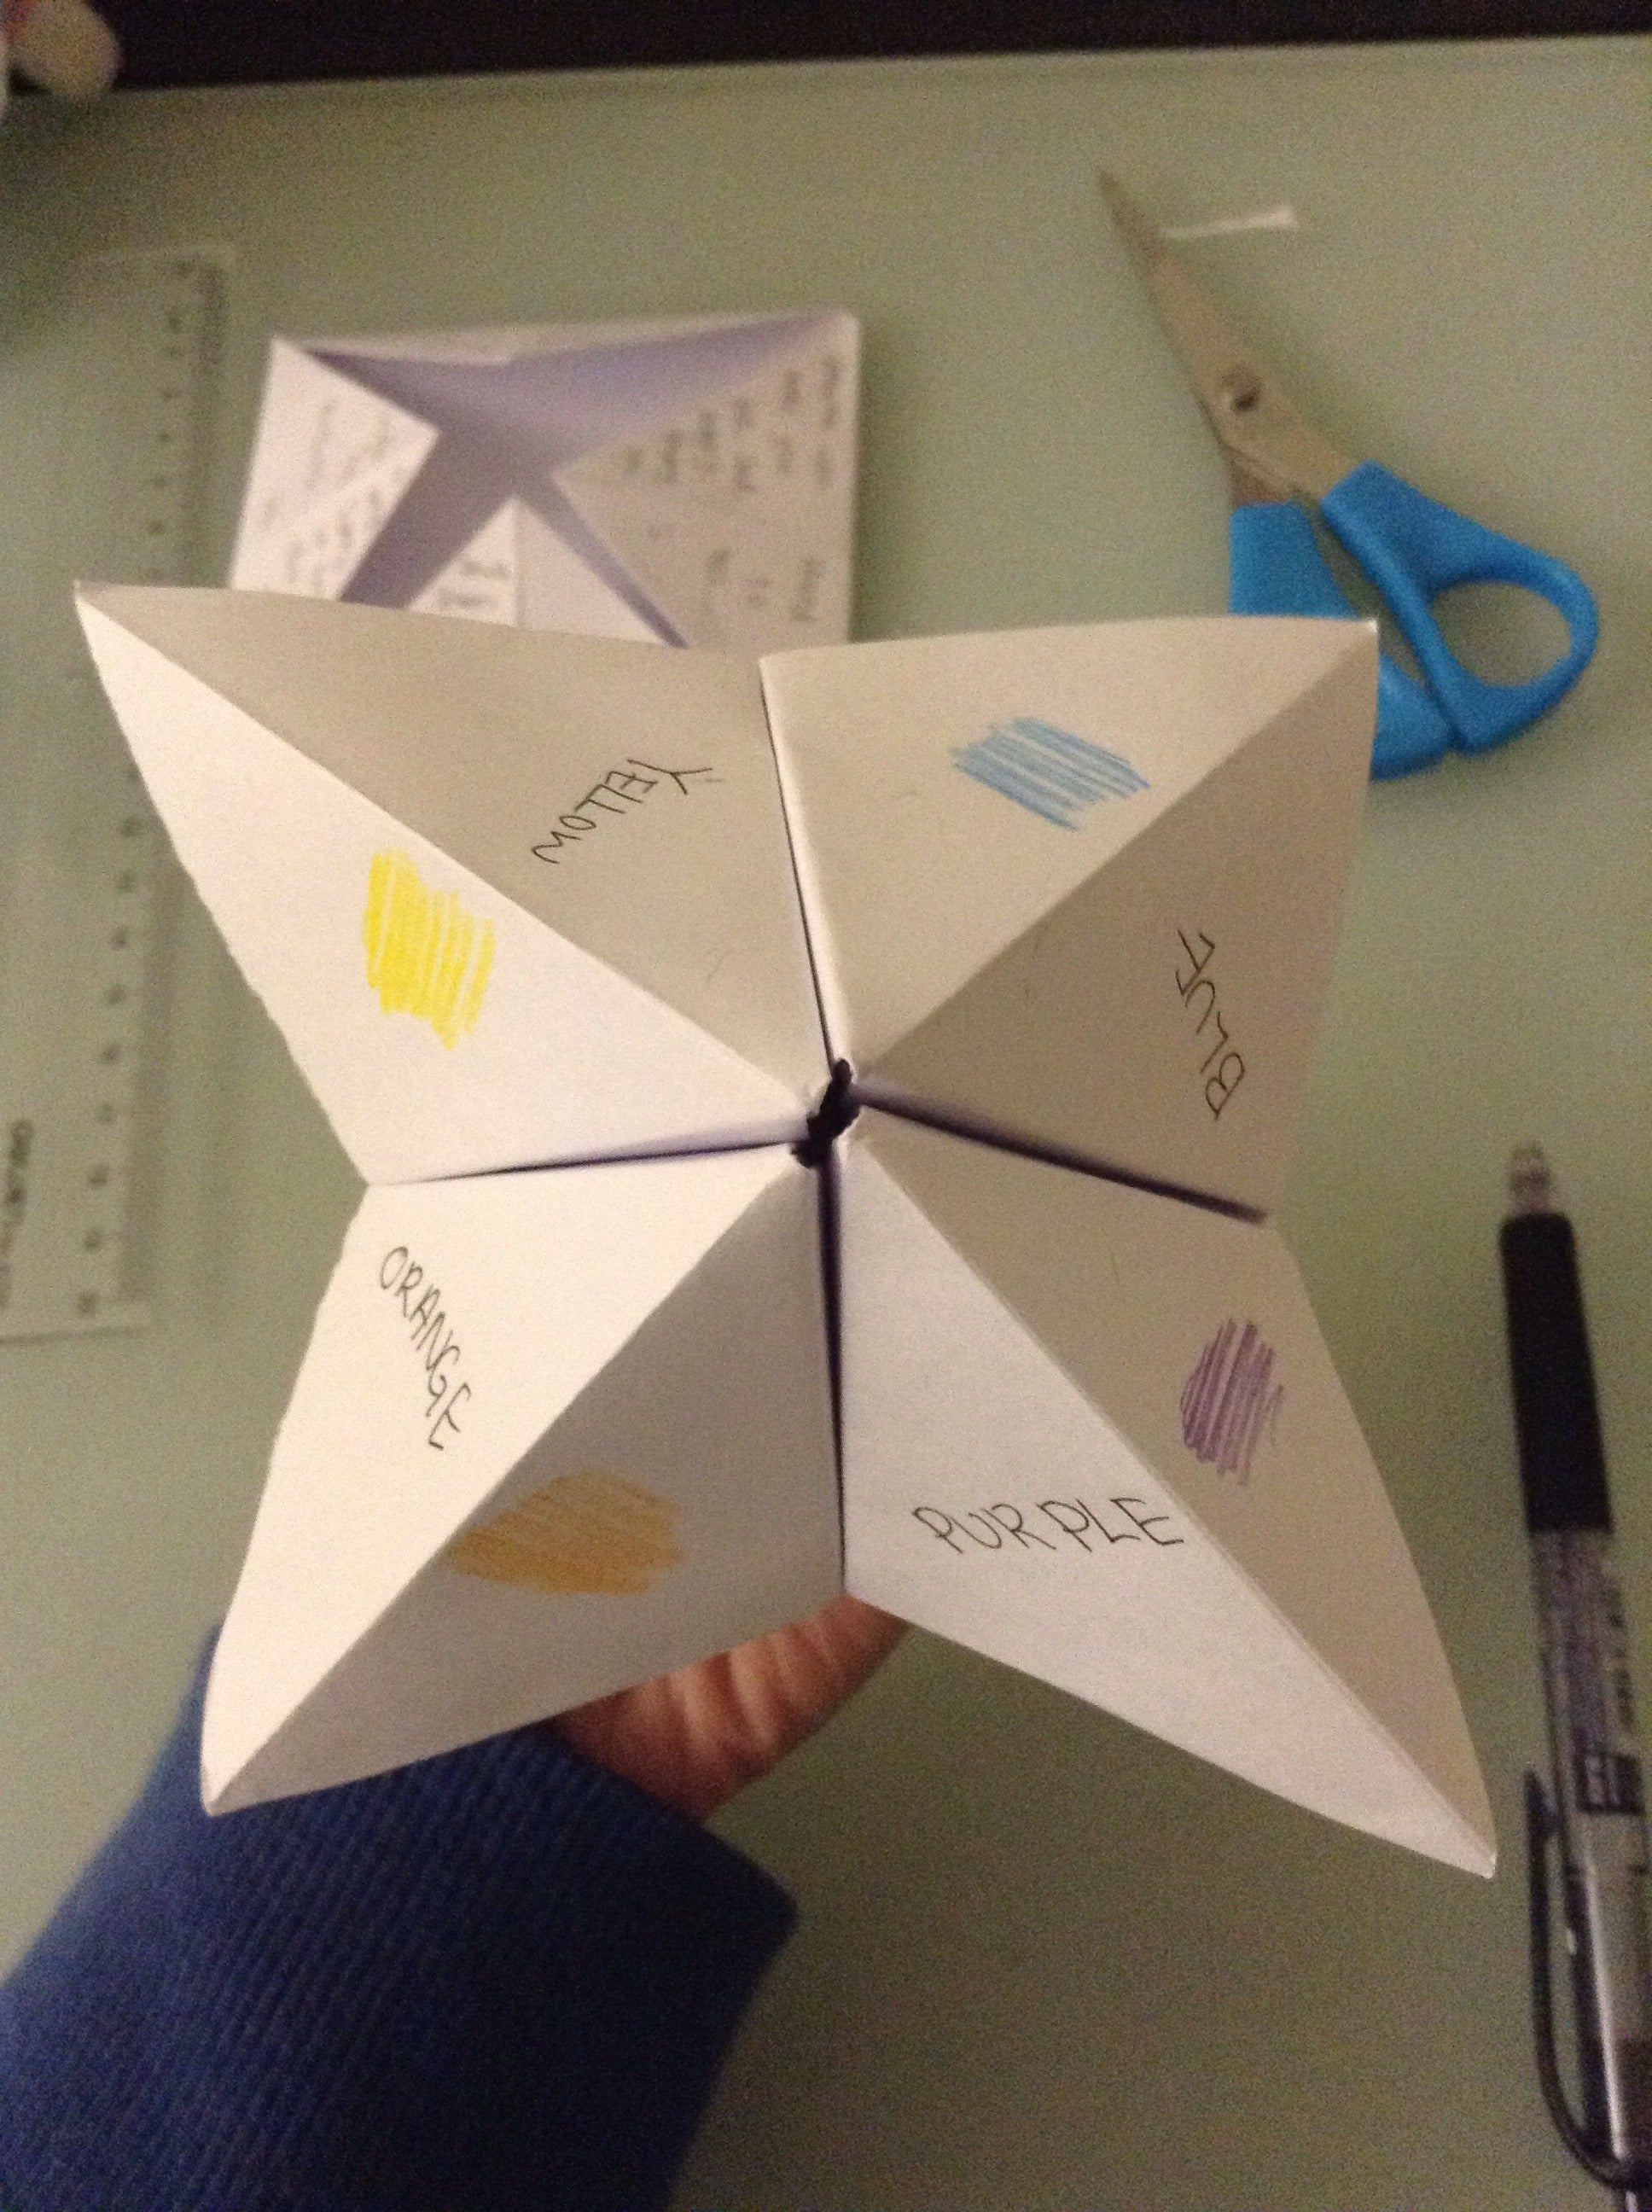 Origami Fortune Teller Instructions - Make an Origami Fortune Teller | 2592x1936